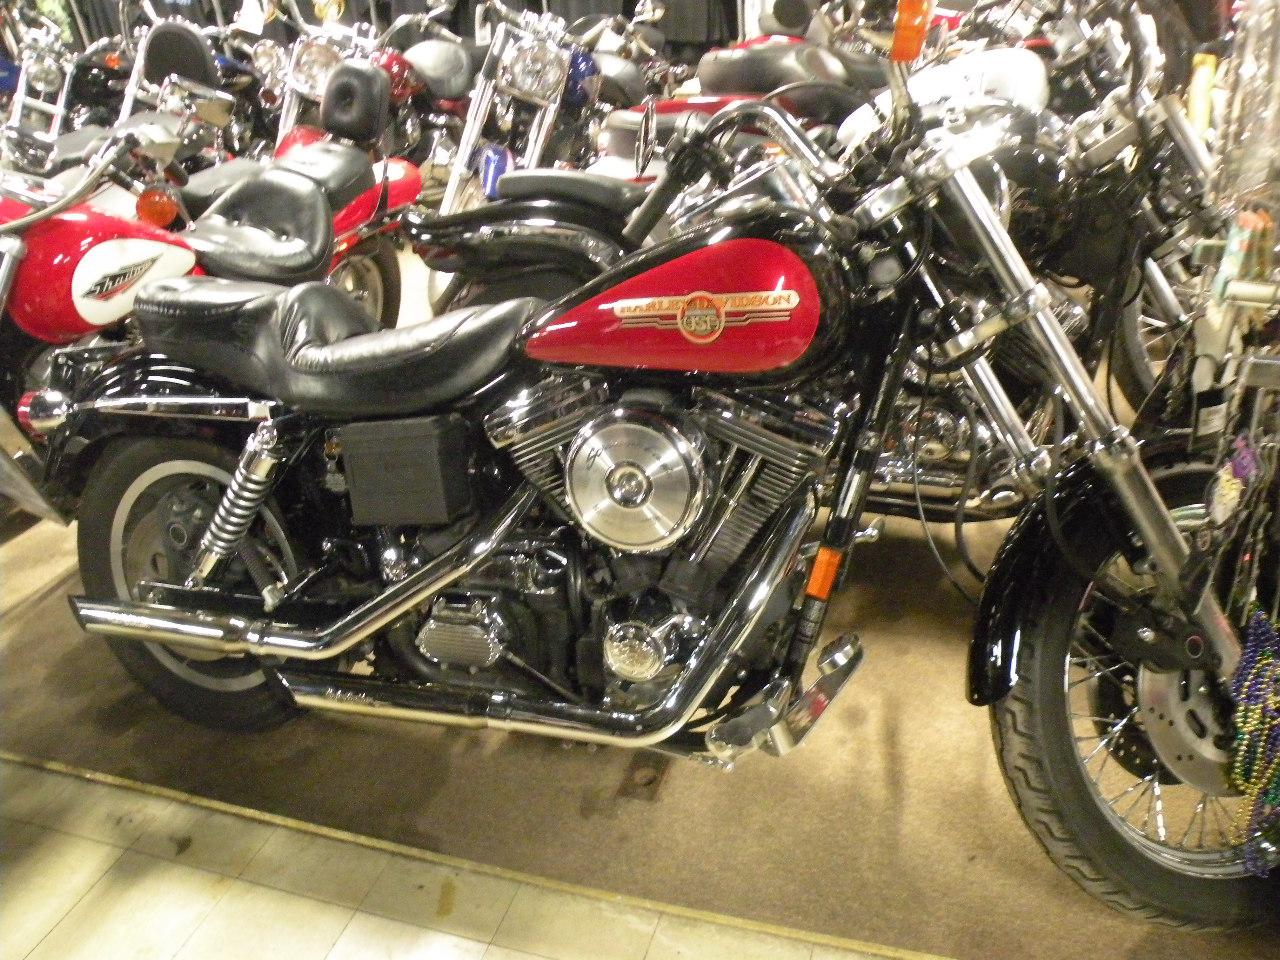 1993 Harley-Davidson FXDL Dyna Low Rider 1340, motorcycle listing